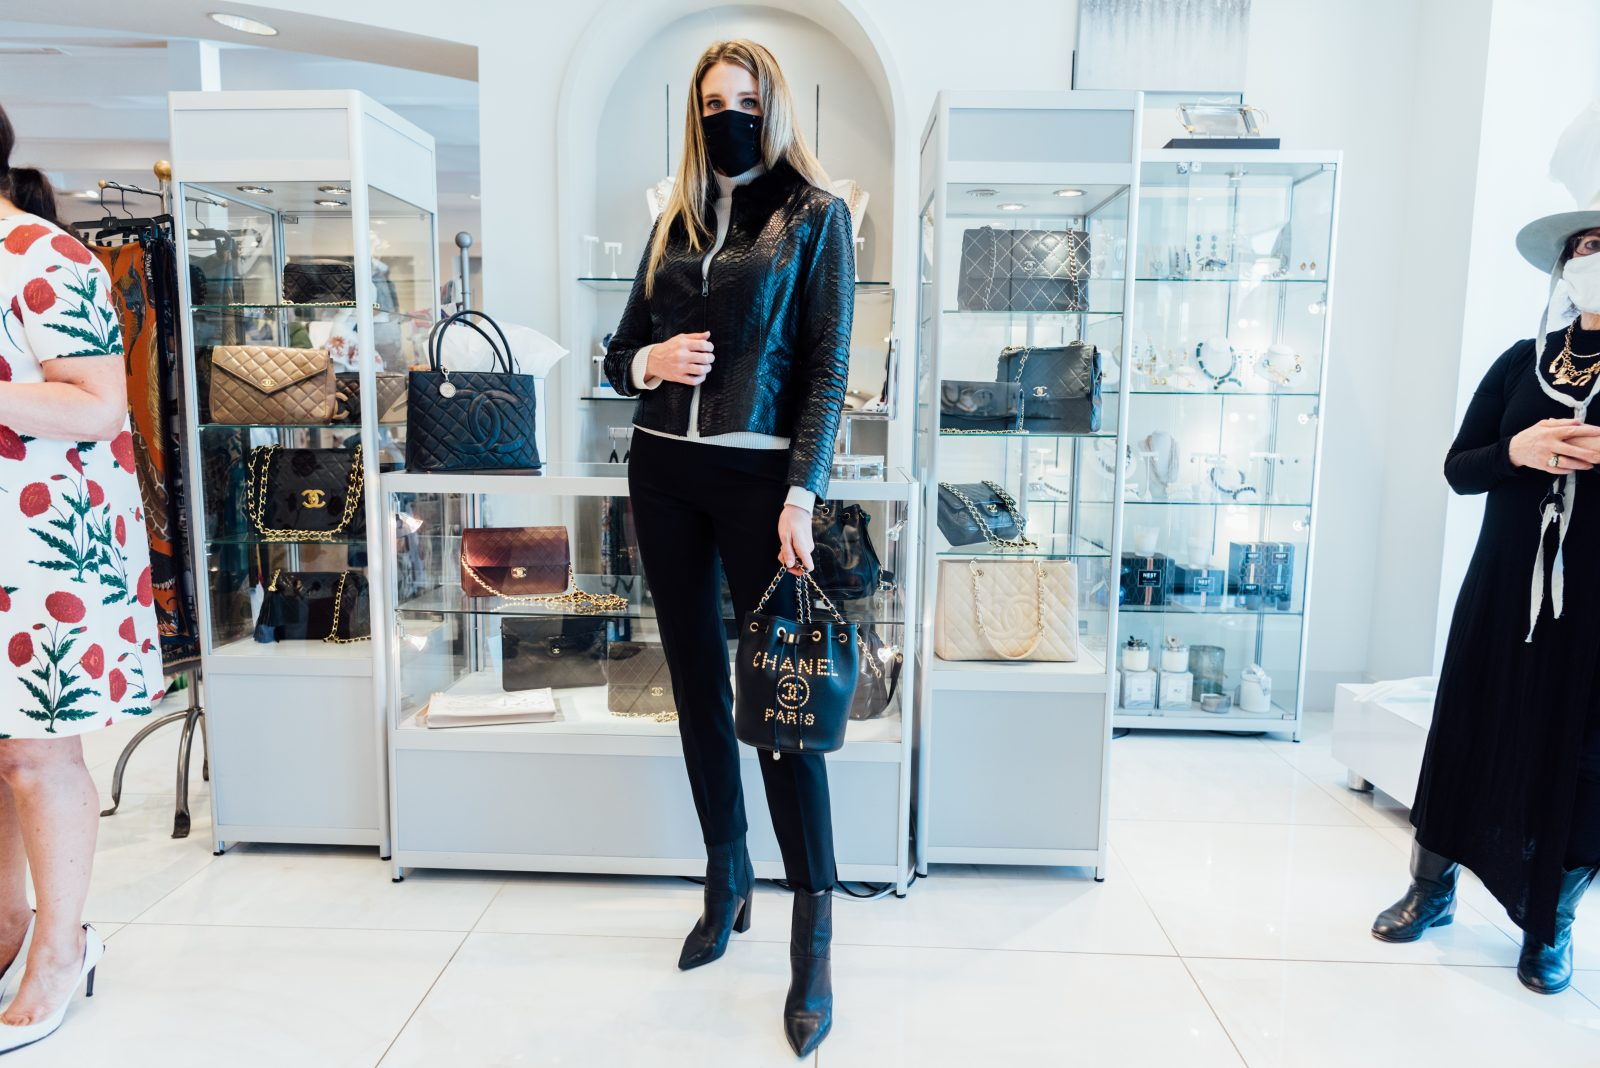 Tall woman showing off her vintage Chanel showcase